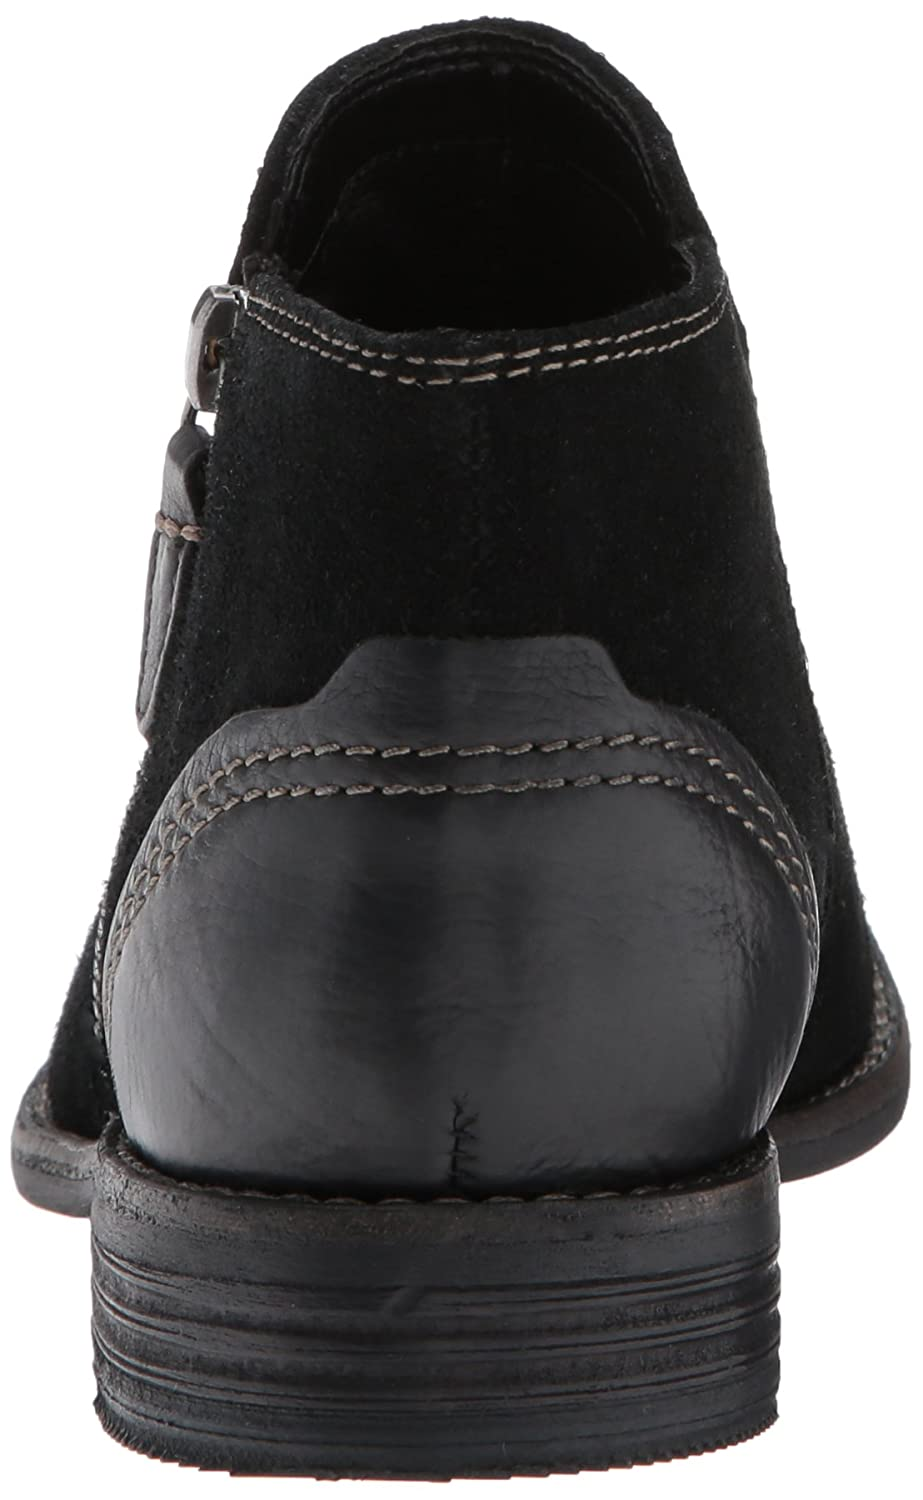 5a7e961d8134 Clarks Womens Maypearl Juno  Amazon.co.uk  Shoes   Bags